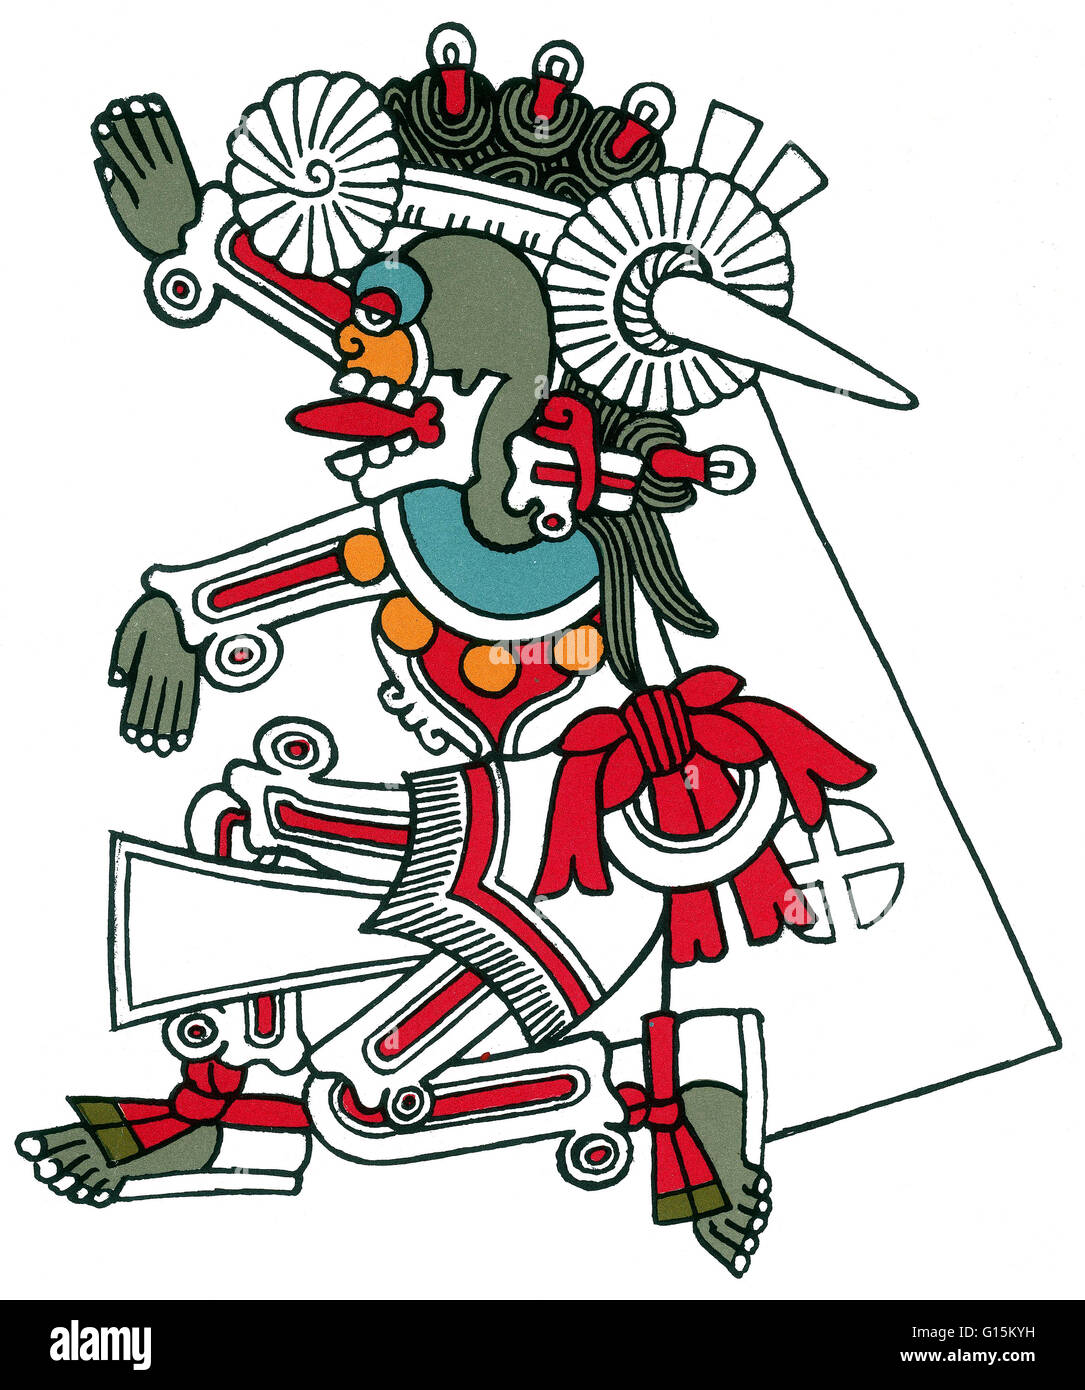 Mictlantecuhtli, in Aztec mythology, was a god of the dead and the king of Mictlan, the lowest and northernmost - Stock Image